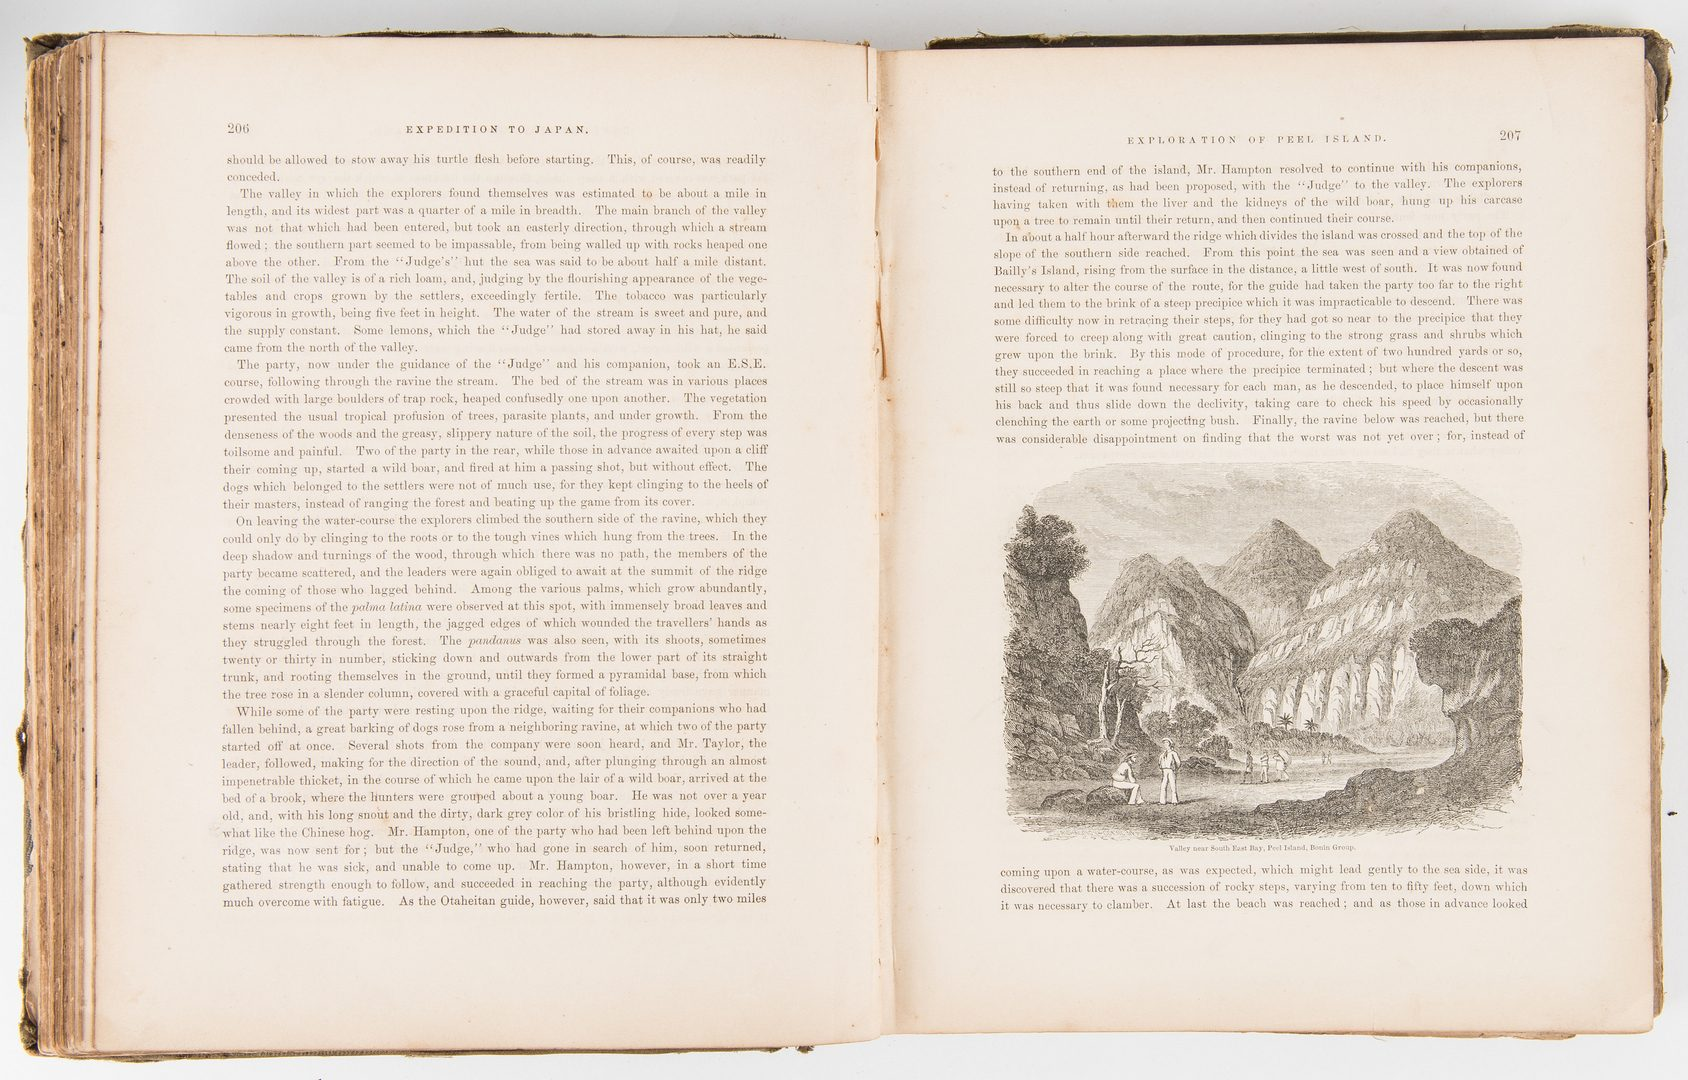 Lot 174: 2 Dearborn/Marshall Family Books, incl. Infantry-Tactics, Vol. I, 1835